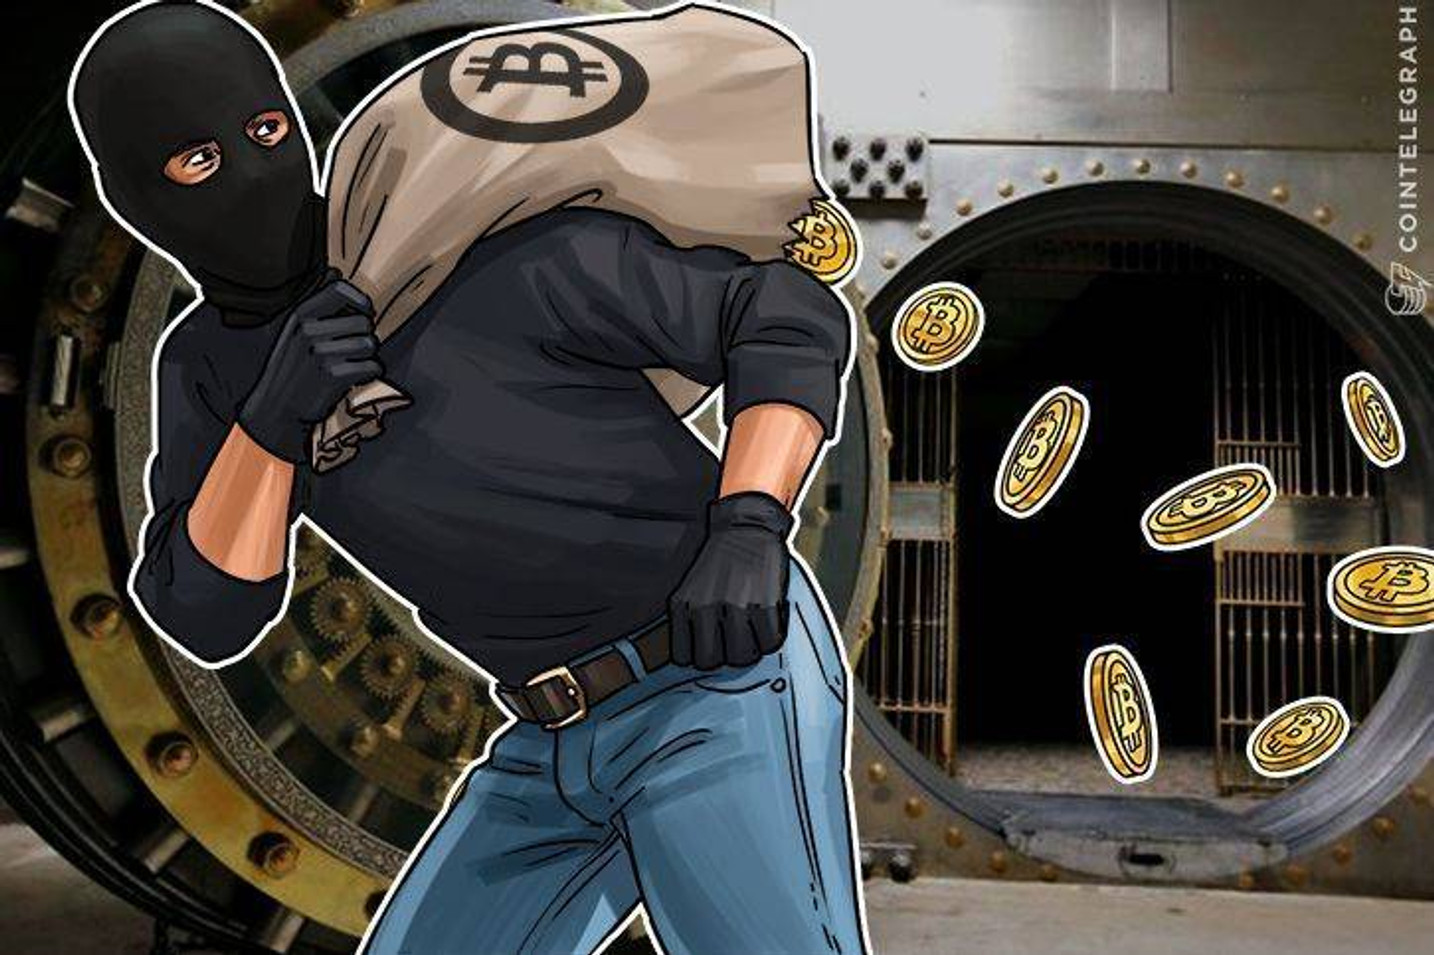 Report: $1.1 Bln in Crypto Has Been Stolen This Year